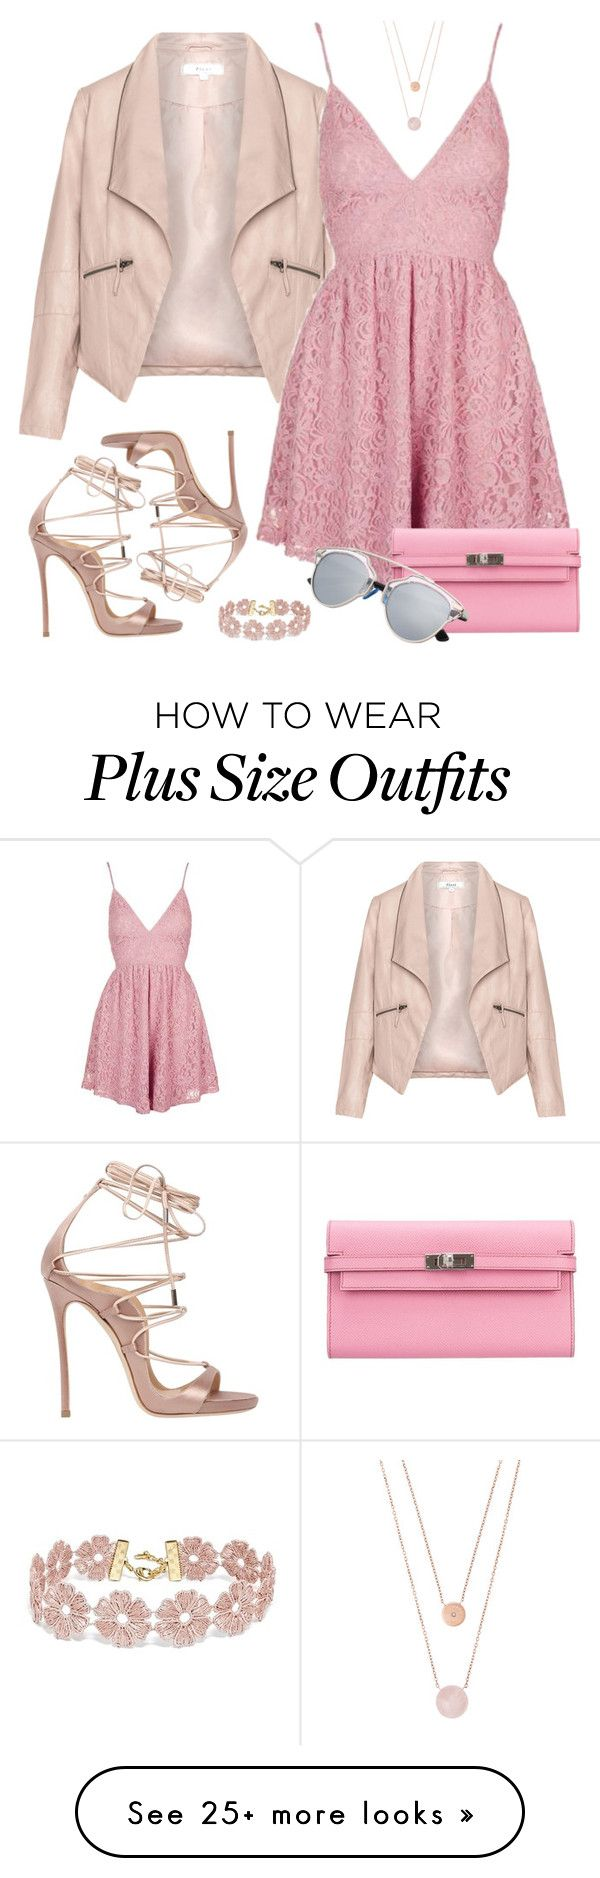 """Untitled #1105"" by k-8314-k on Polyvore featuring Zizzi, Topshop, Dsquared2, Hermès, BaubleBar and Michael Kors"